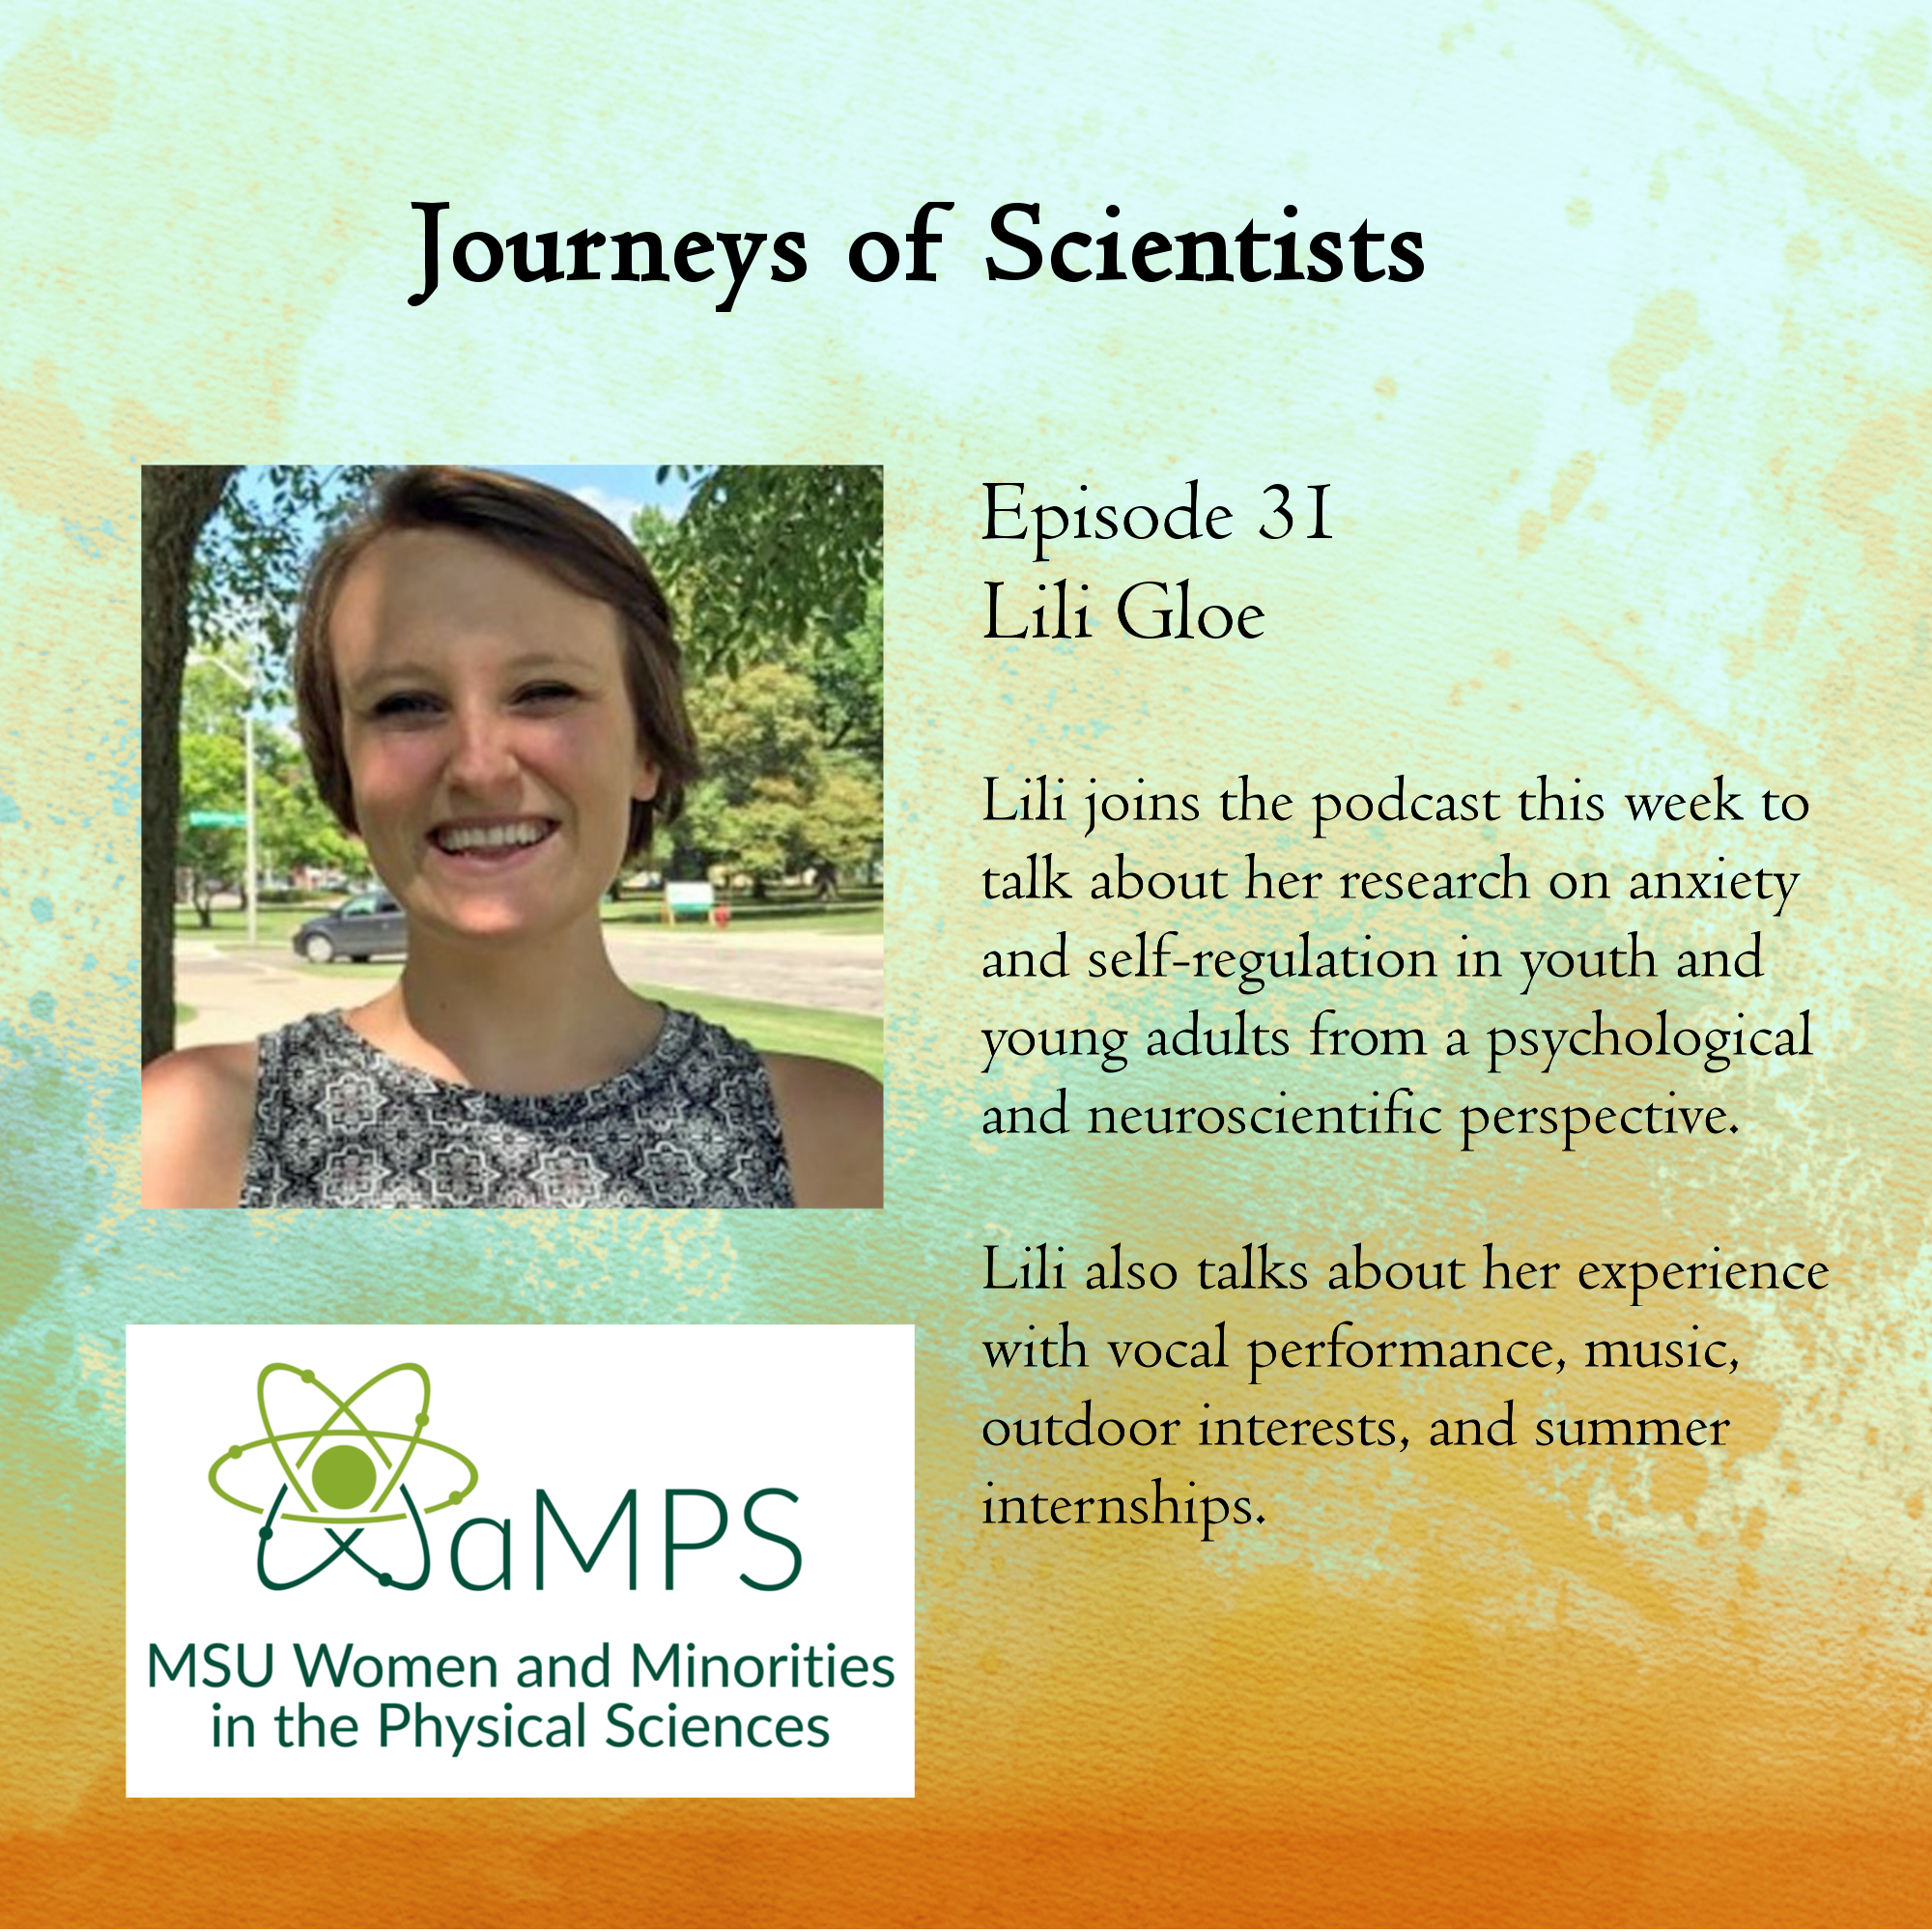 Lili is a 5th year graduate student in the Clinical Psychology Doctoral Program at Michigan State University. She researches anxiety and self-regulation in youth and young adults from a psychological and neuroscientific perspective.